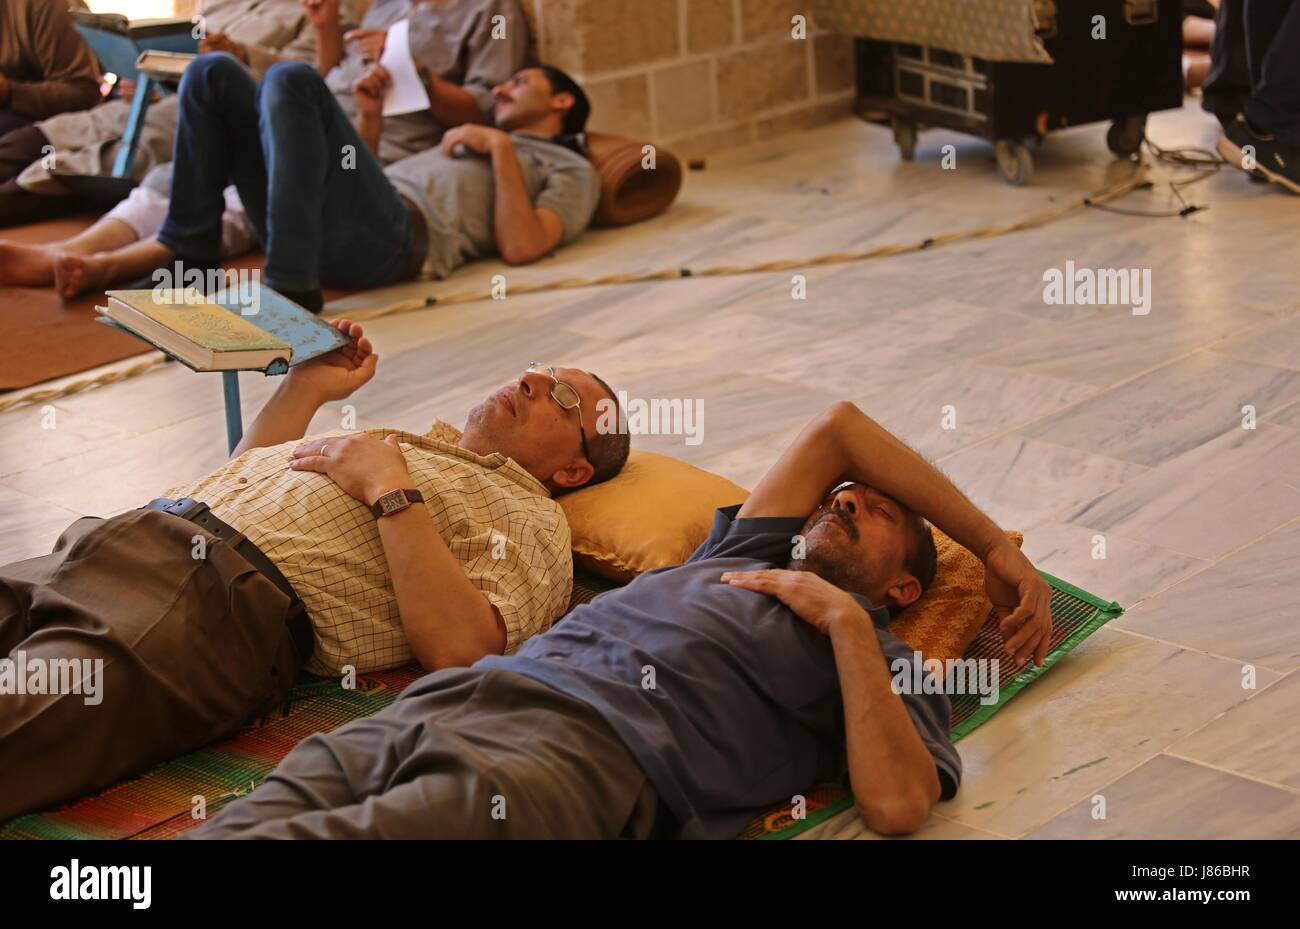 Gaza City, Gaza Strip, Palestinian Territory. 27th May, 2017. Palestinian men take nap on the first day of fasting - Stock Image